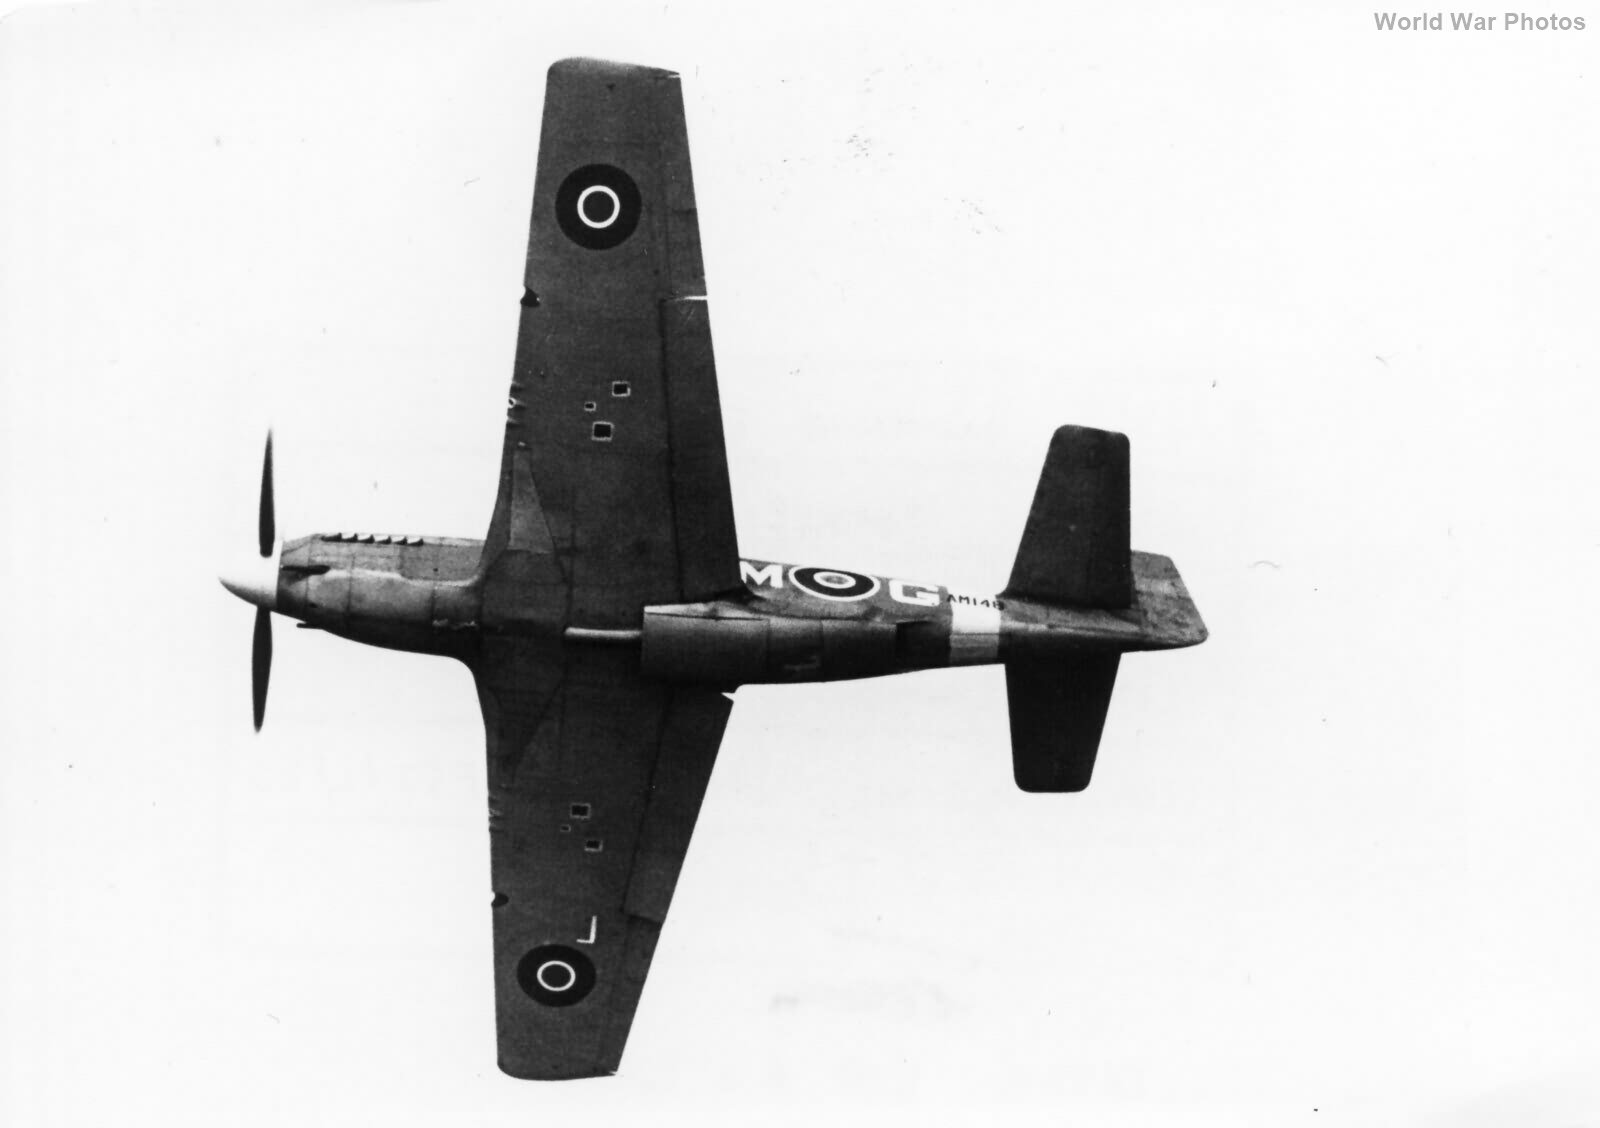 Mustang I AM148 RM-G 26 sqn August 1942